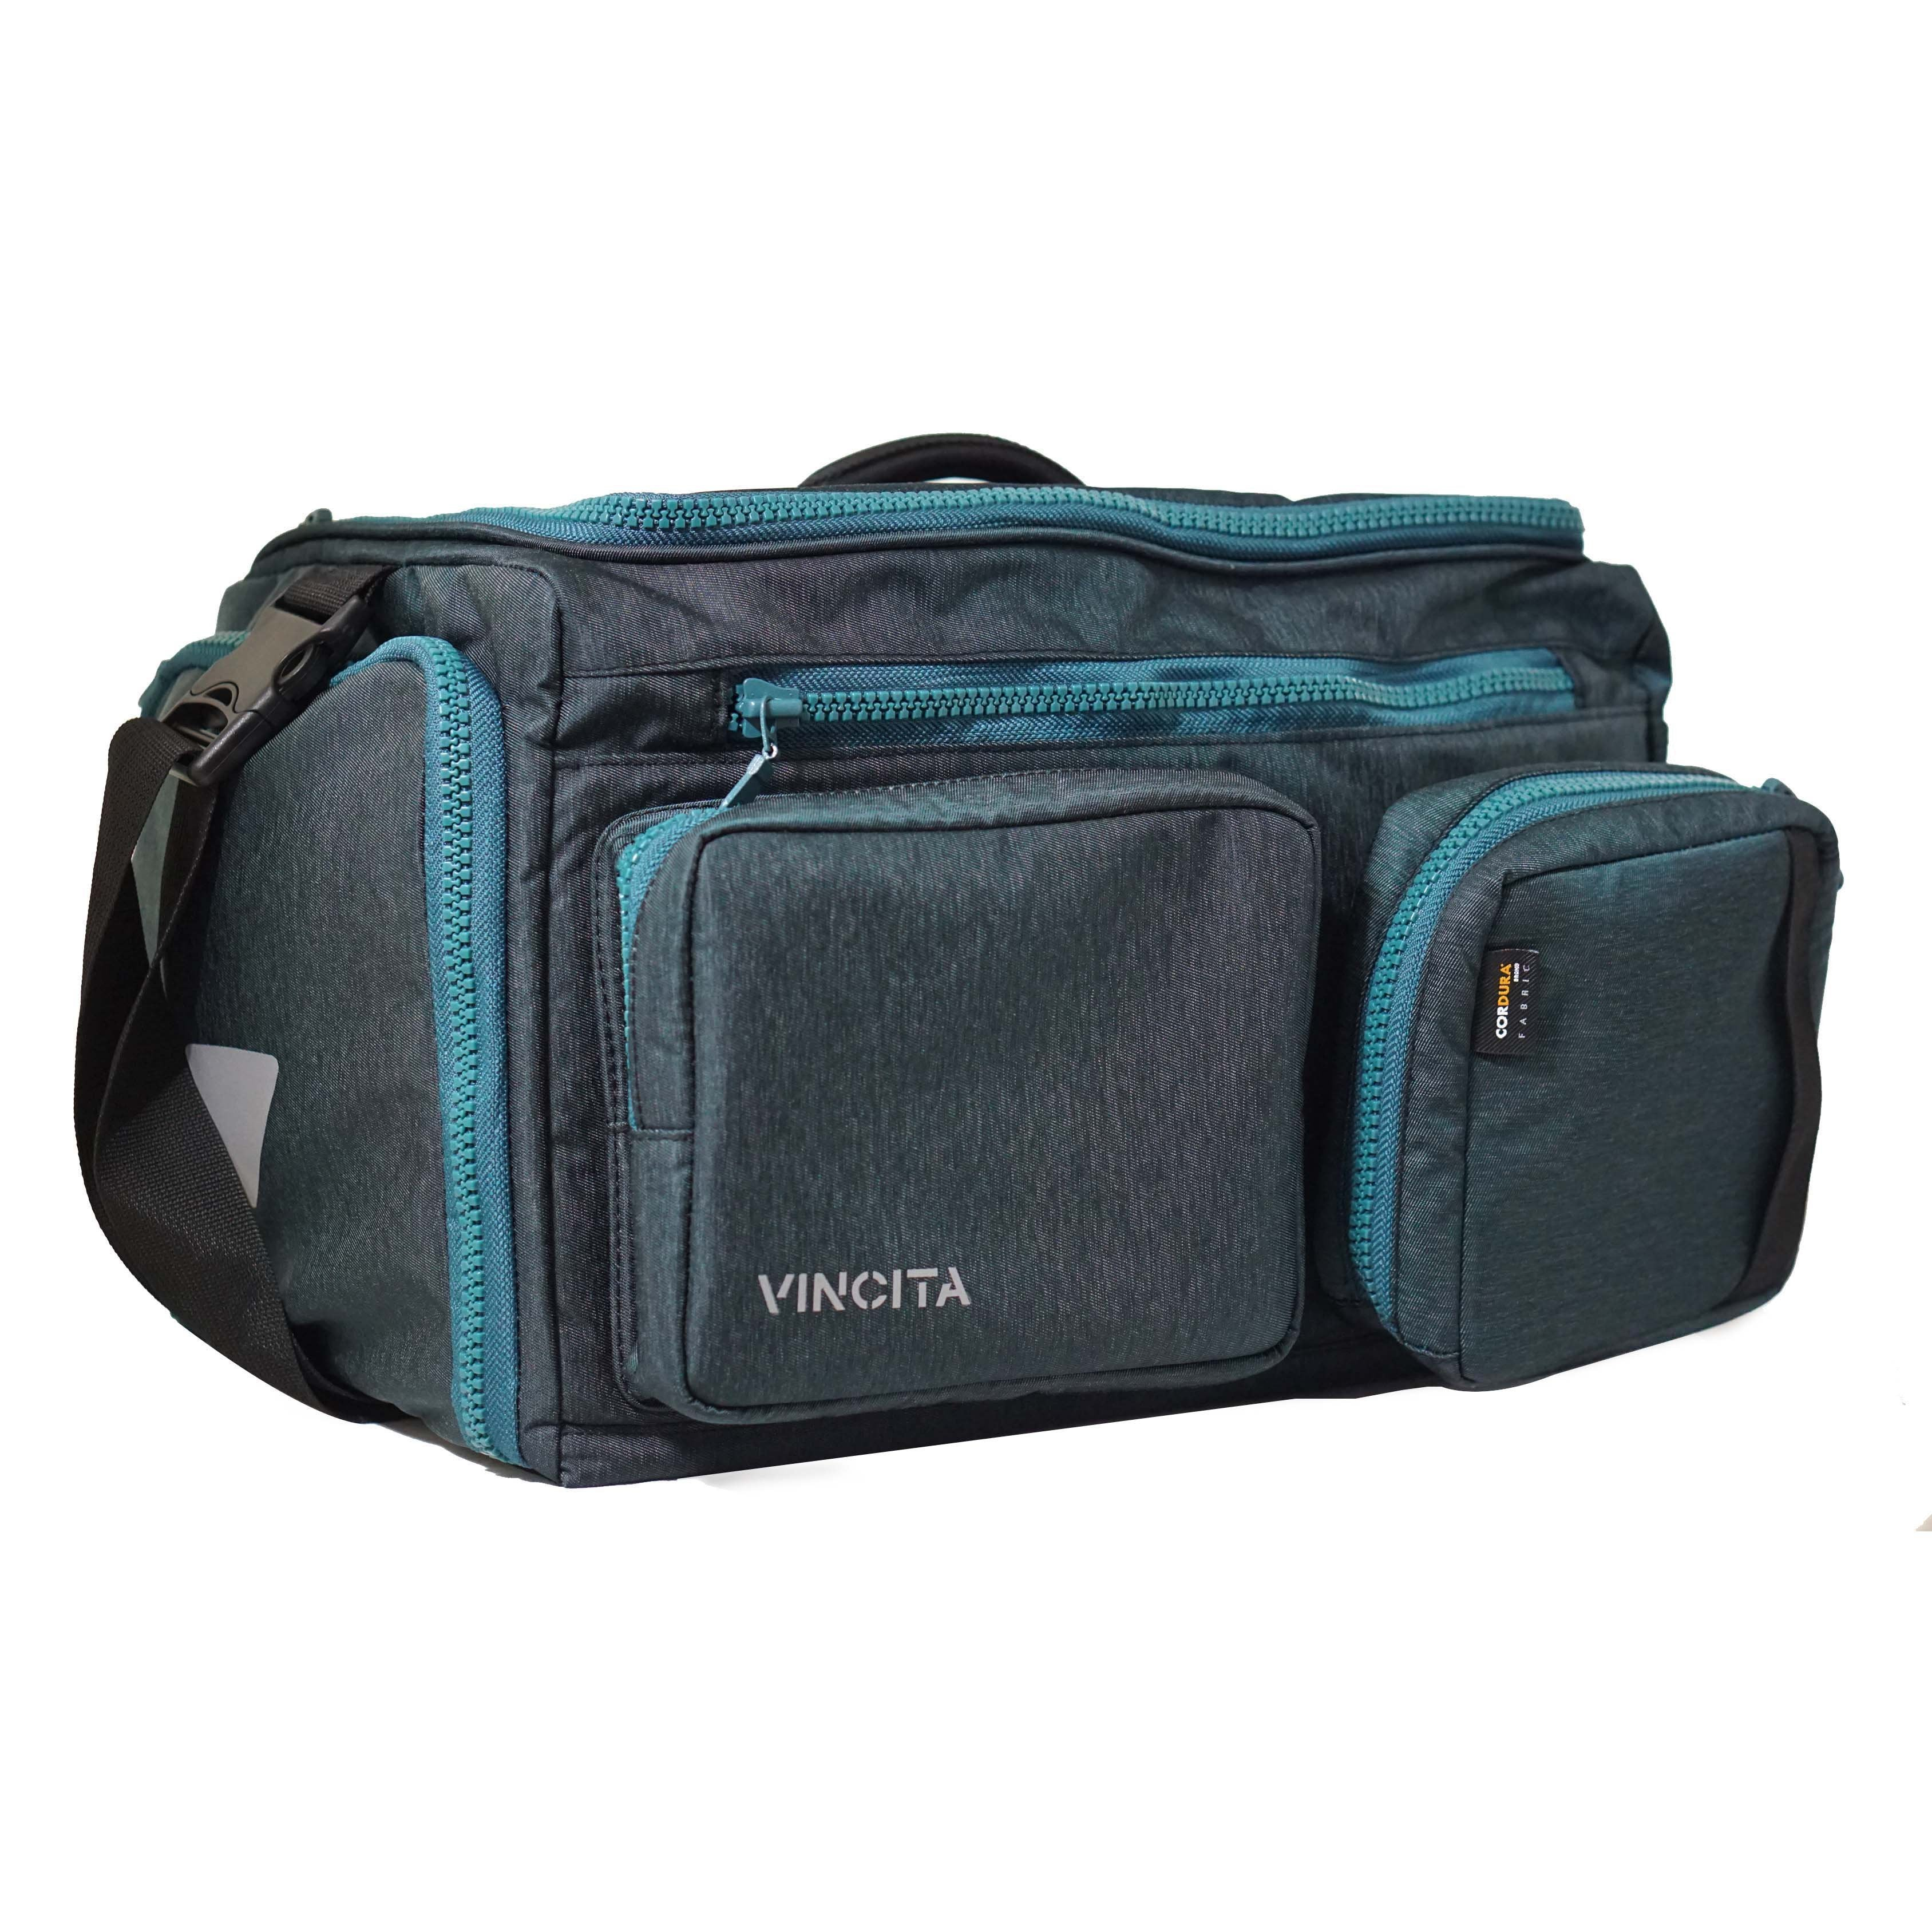 Vincita Co., Ltd. B163-L NORMAN DUFFEL BAG